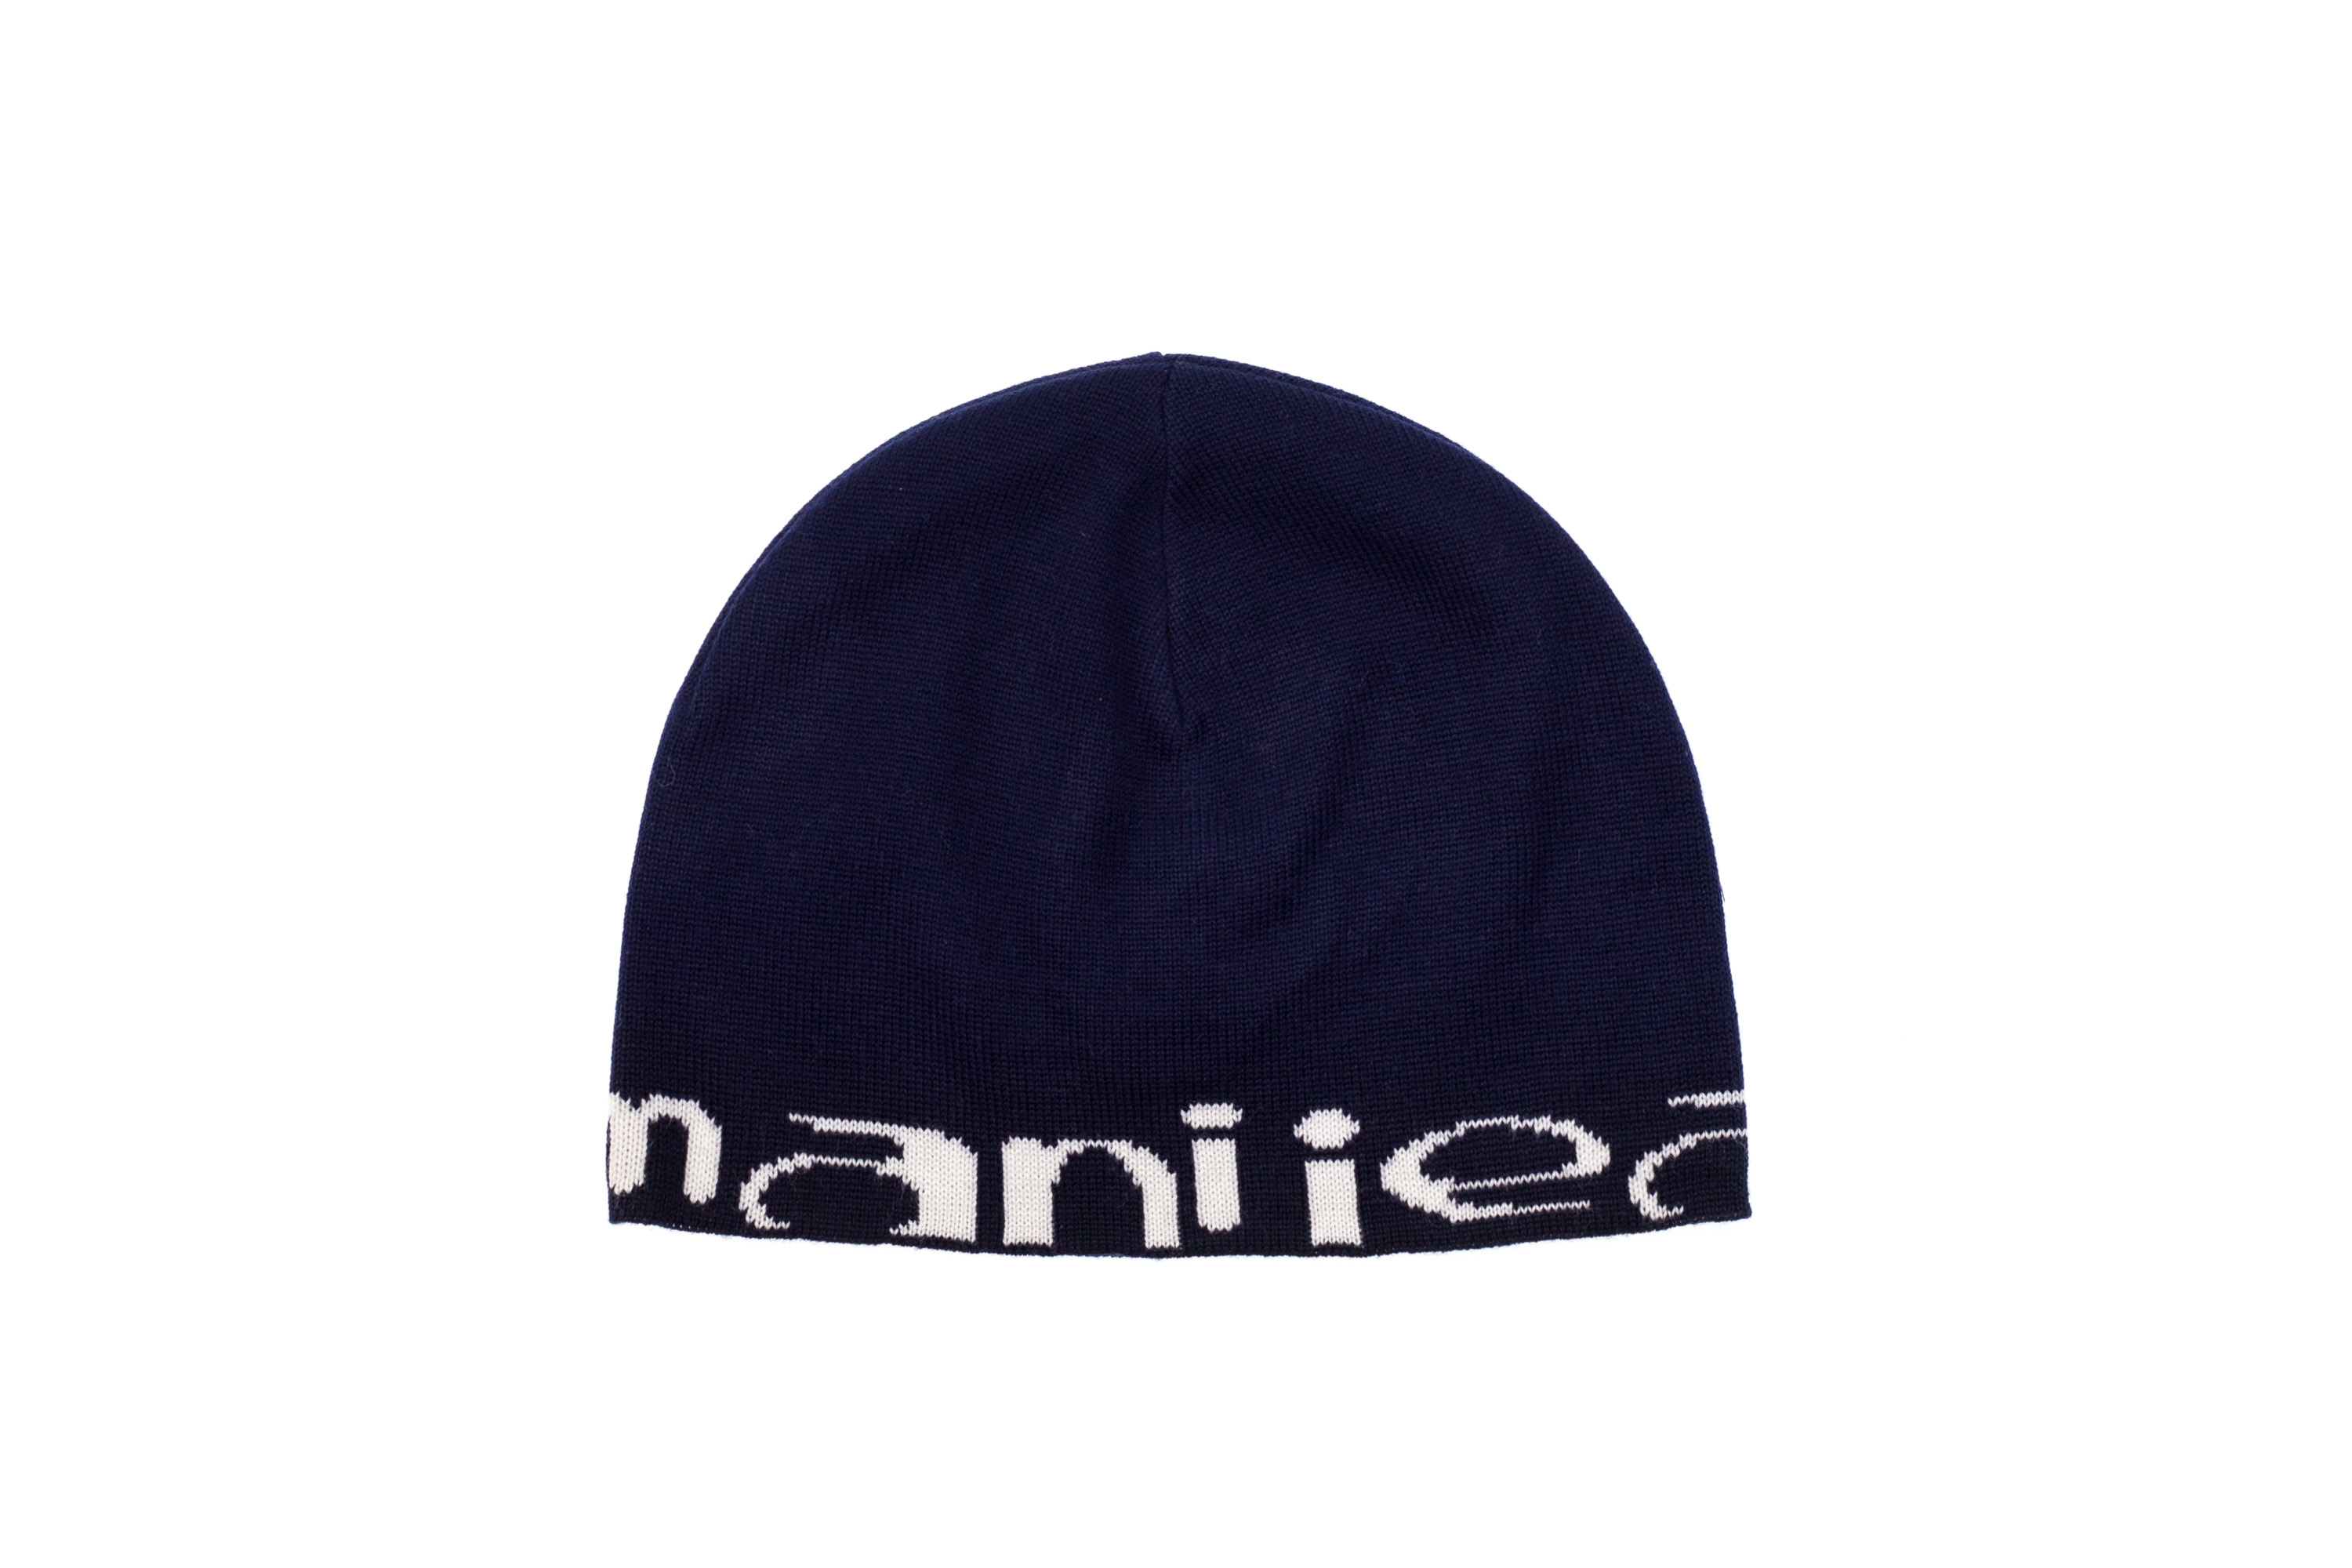 Details about ARMANI JEANS Men Winter Cuff BEANIE Hat Knit Cap Warm Blue  Wool White Logo bb48861c8a6